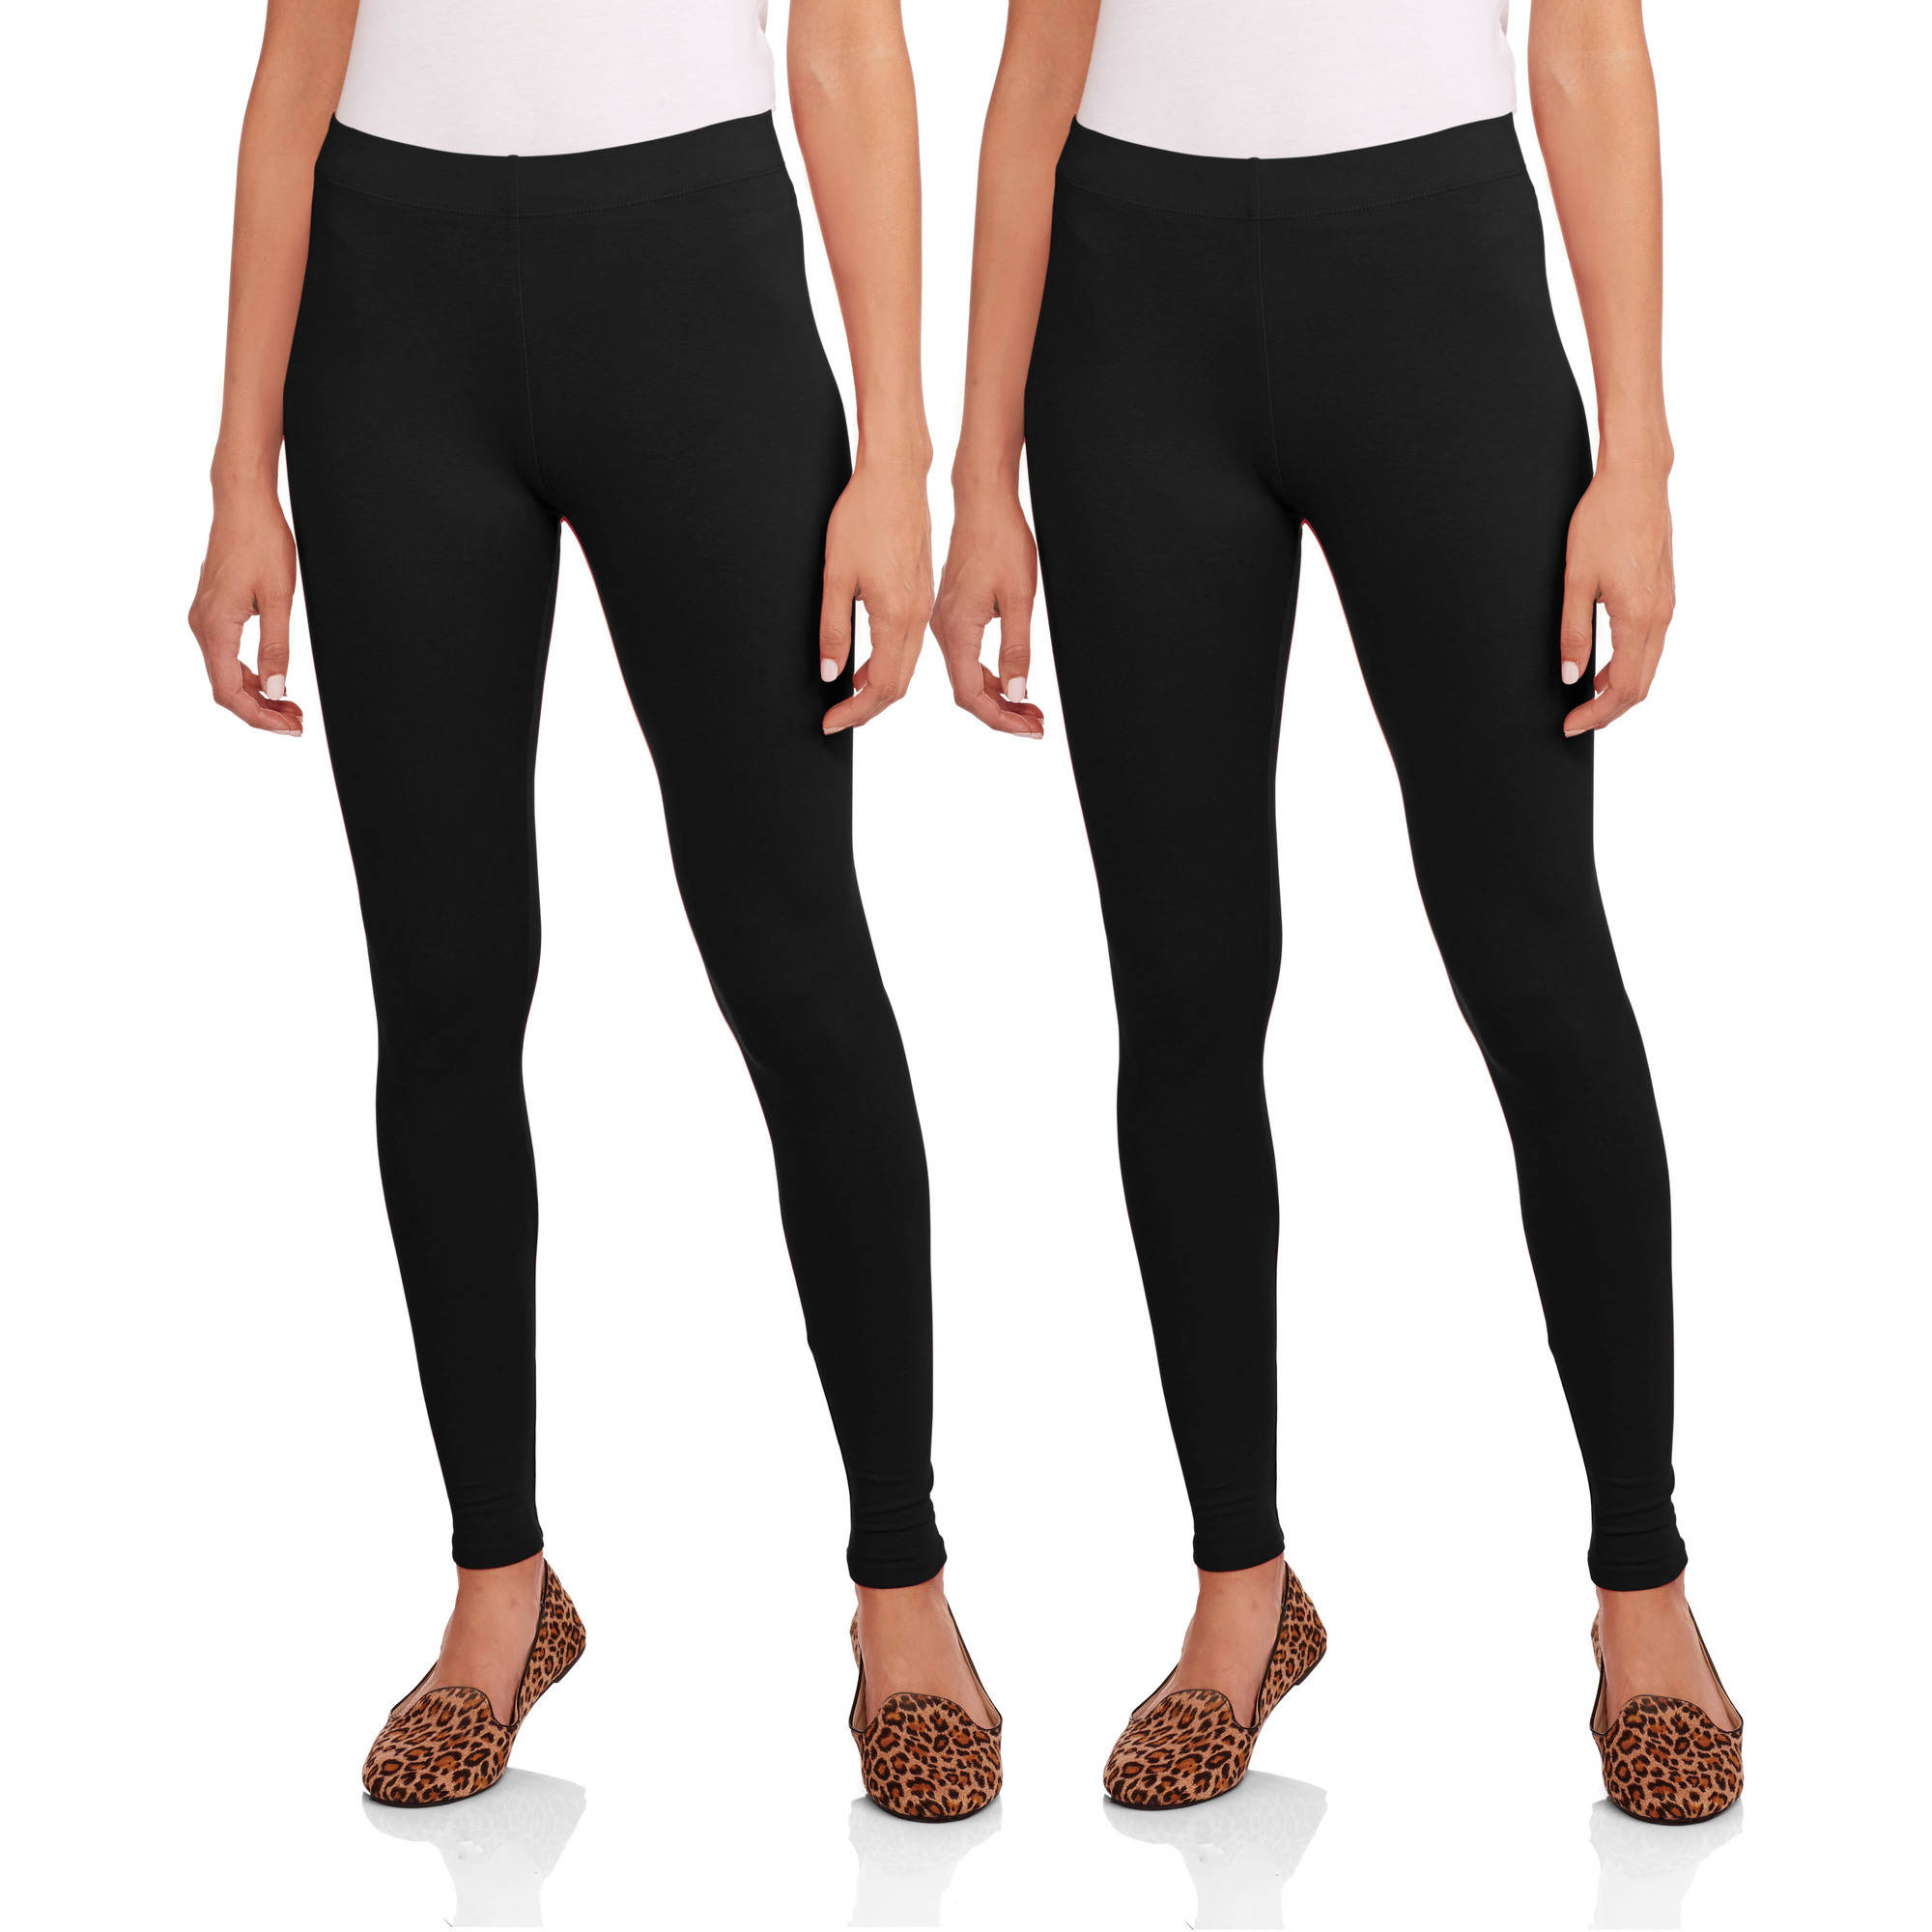 Faded Glory Women's Essential Leggings, 2-Pack